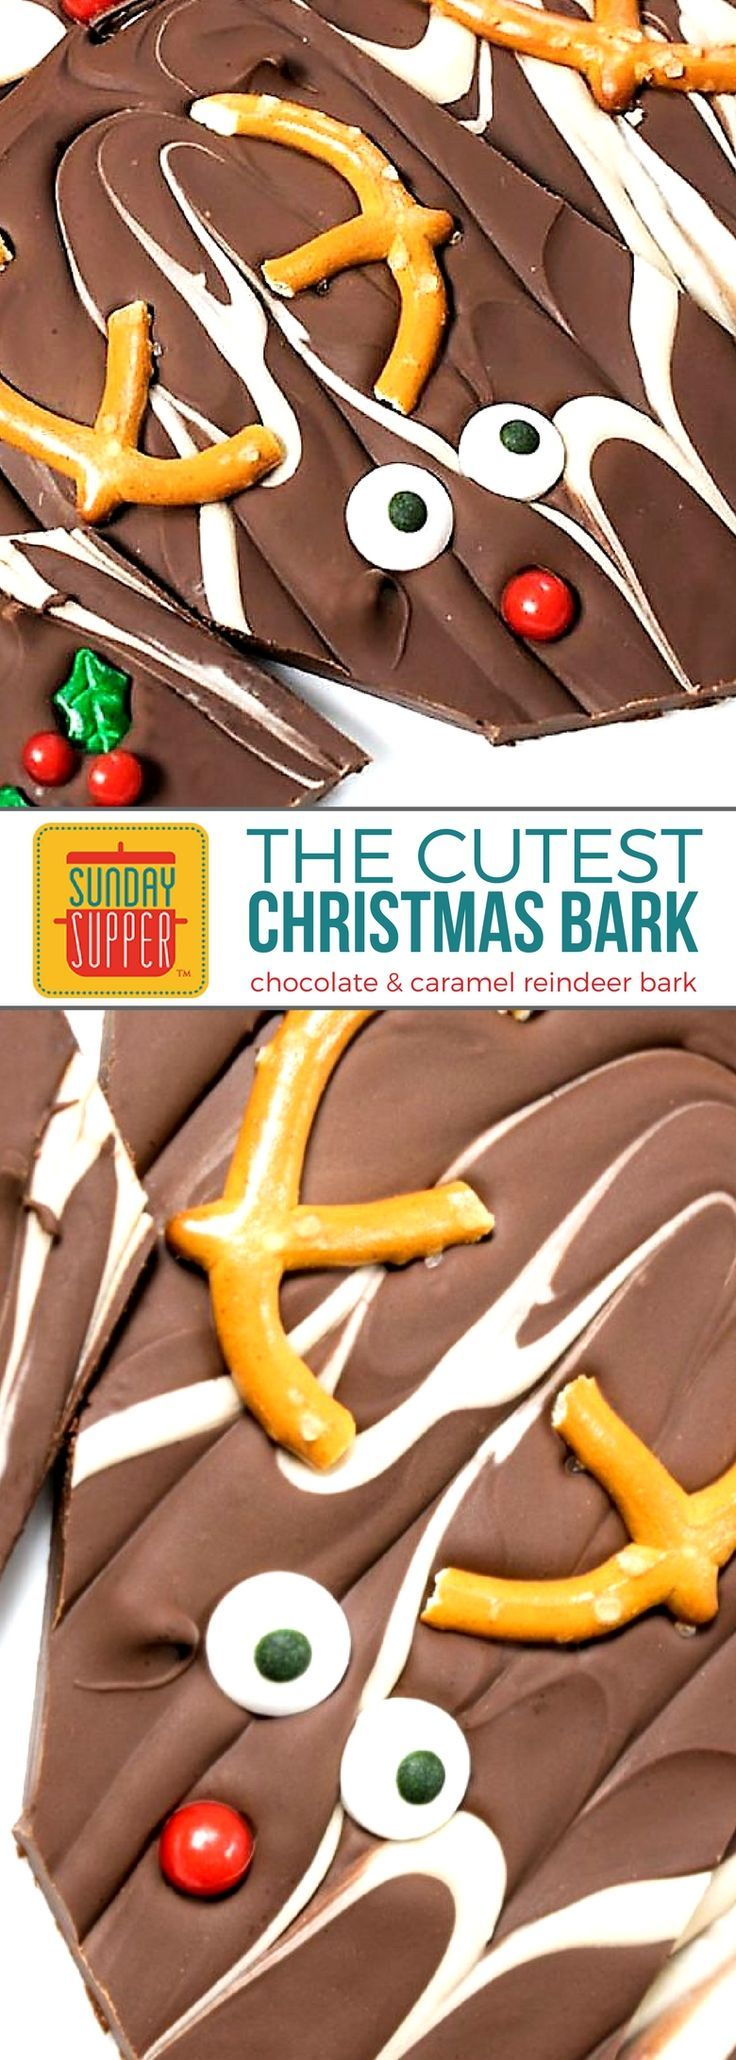 The cutest Christmas Bark recipe is also the easiest holiday treat to make and share! An AWESOME homemade holiday food gift! Kids of ALL ages will LOVE this adorable treat! With just a few common ingredients you can make this easy recipe. Our chocolate & caramel reindeer Christmas Bark recipe will be a hit this holiday season! A delicious snack or dessert option for you buffet table too! #SundaySupper #ChristmasRecipes #ChocolateRecipes #EasyRecipe #BarkRecipe